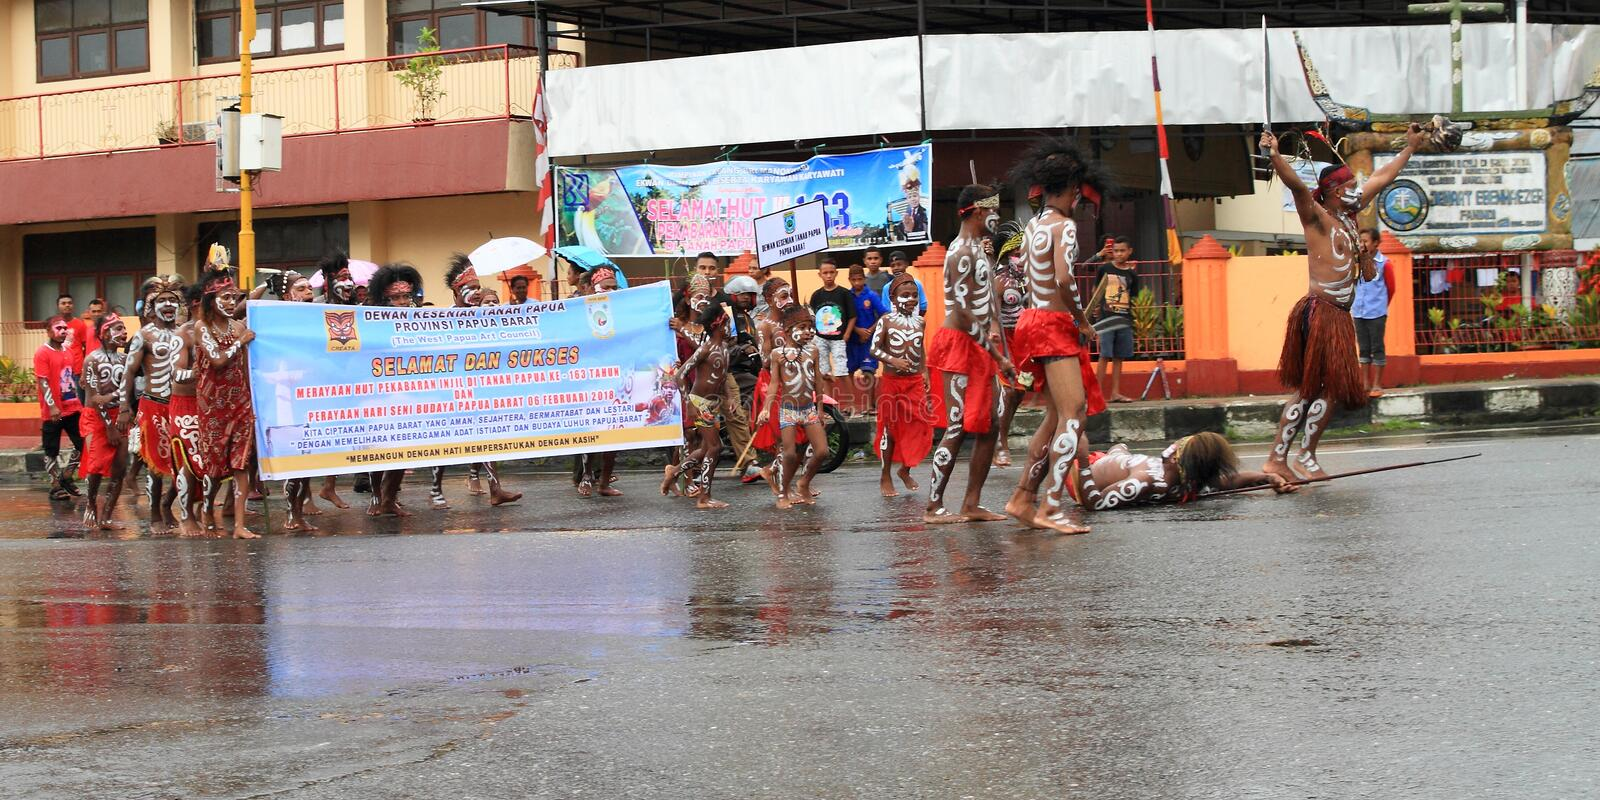 Papuans on celebration of first entry of missionaries. Men, women and kids from Dewan Kesenian Tanah Papua Provinsi Papua Barat - The West Papua Art Council - in royalty free stock photography